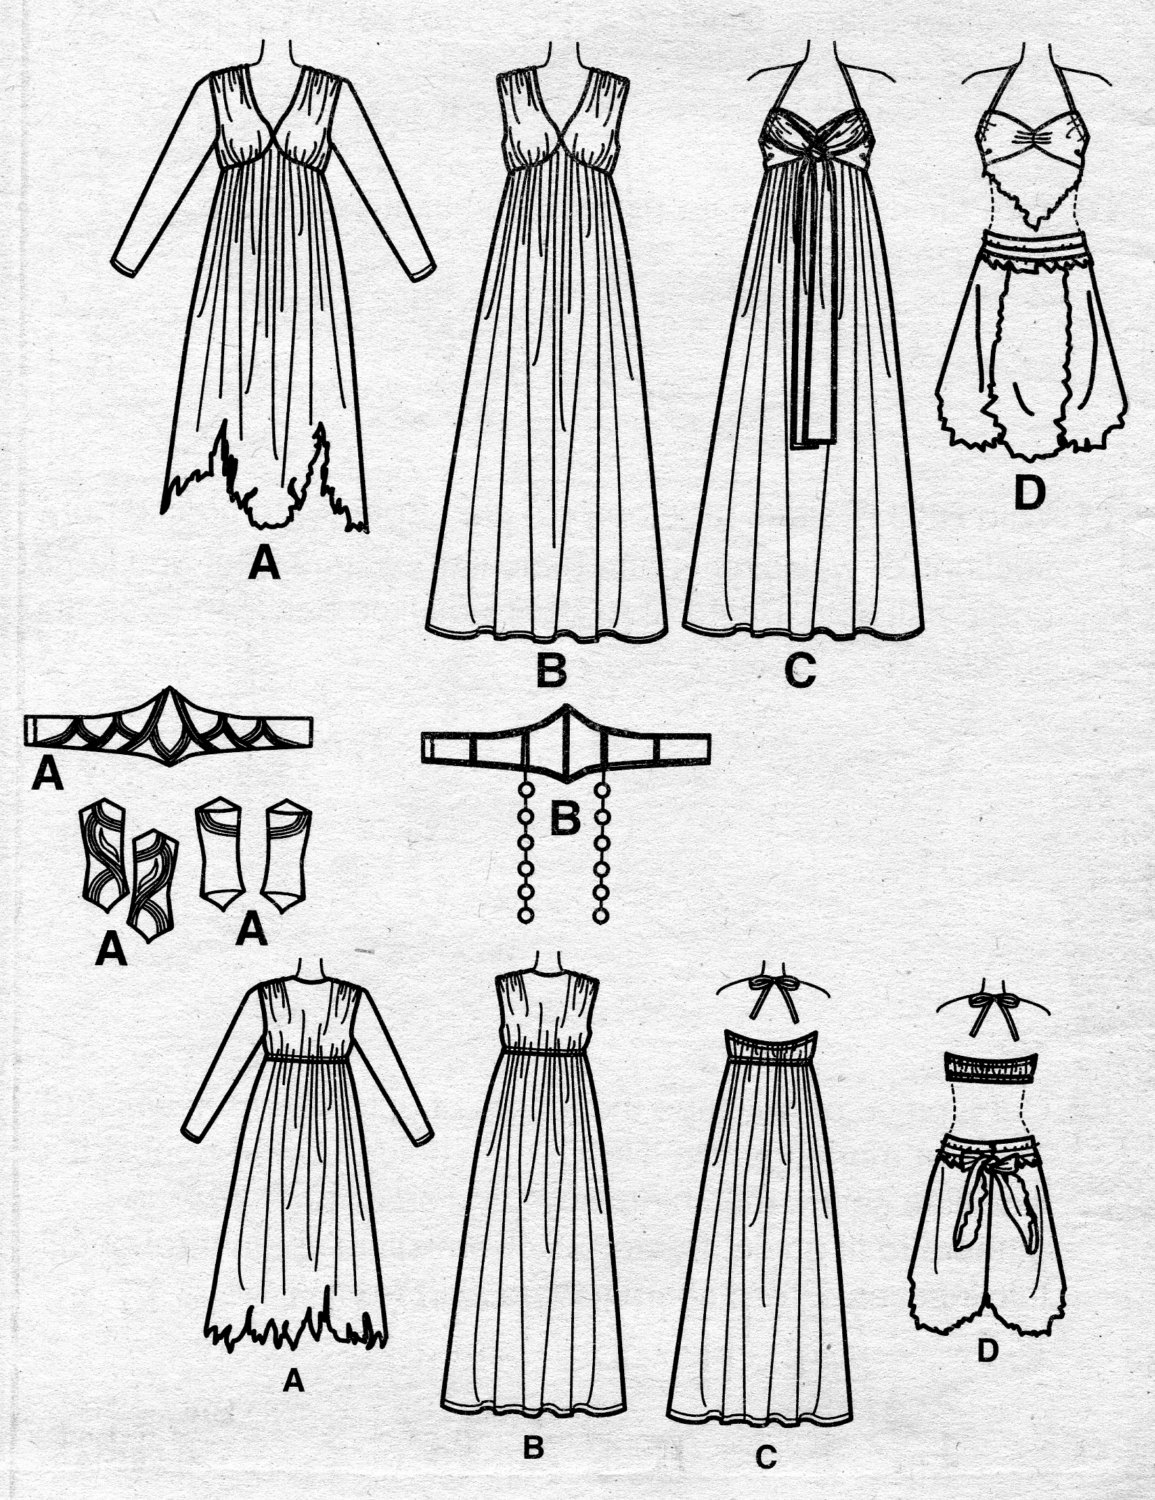 Medieval Dress Drawing at GetDrawings com | Free for personal use